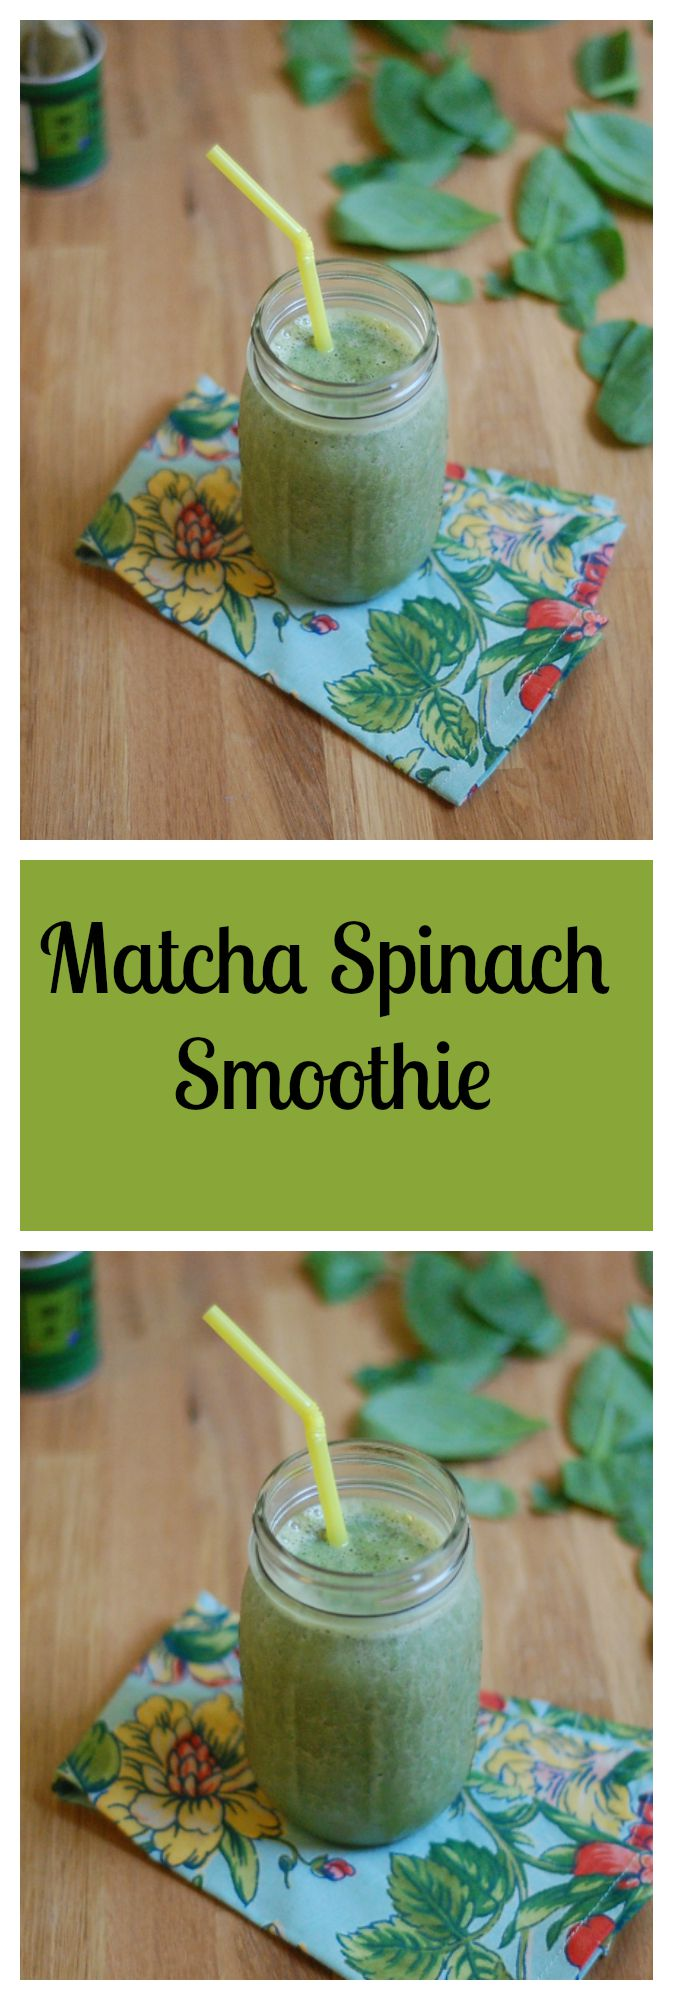 Vegan Matcha Spinach Smoothie